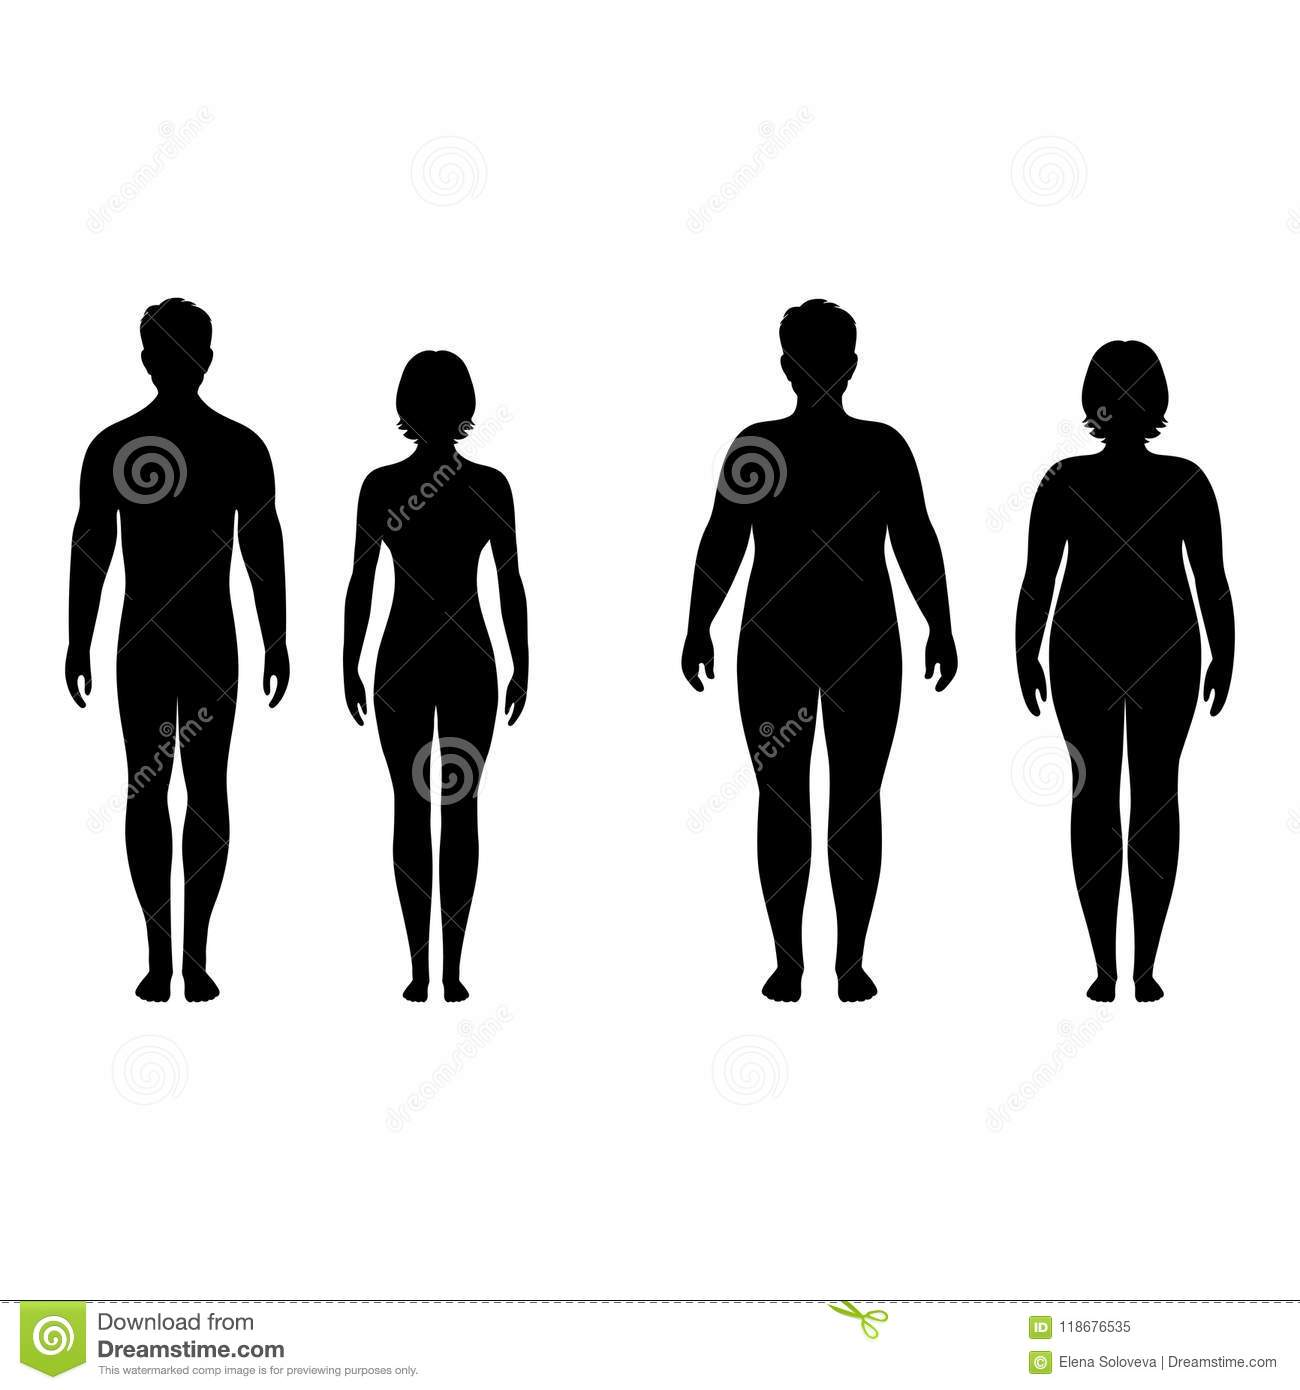 silhouette male and female man and woman silhouette png 10 free cliparts download female silhouette male and